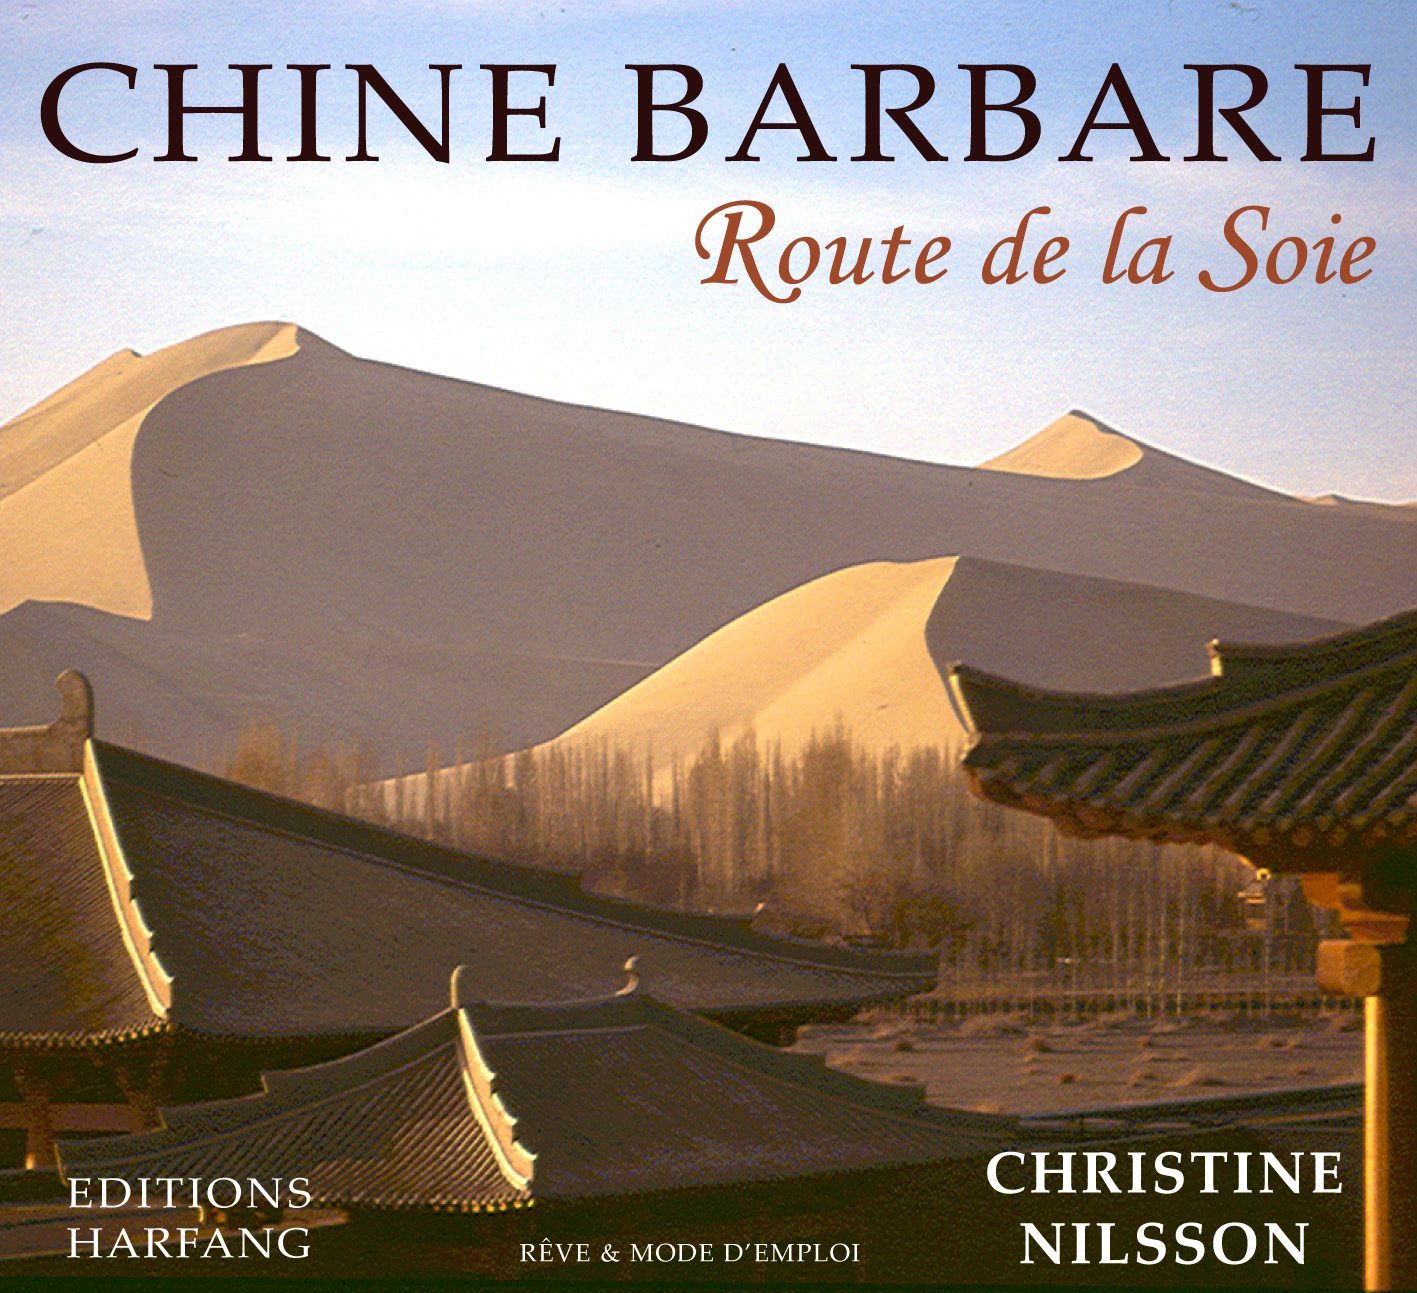 CHINE BARBARE, LA ROUTE DE LA SOIE